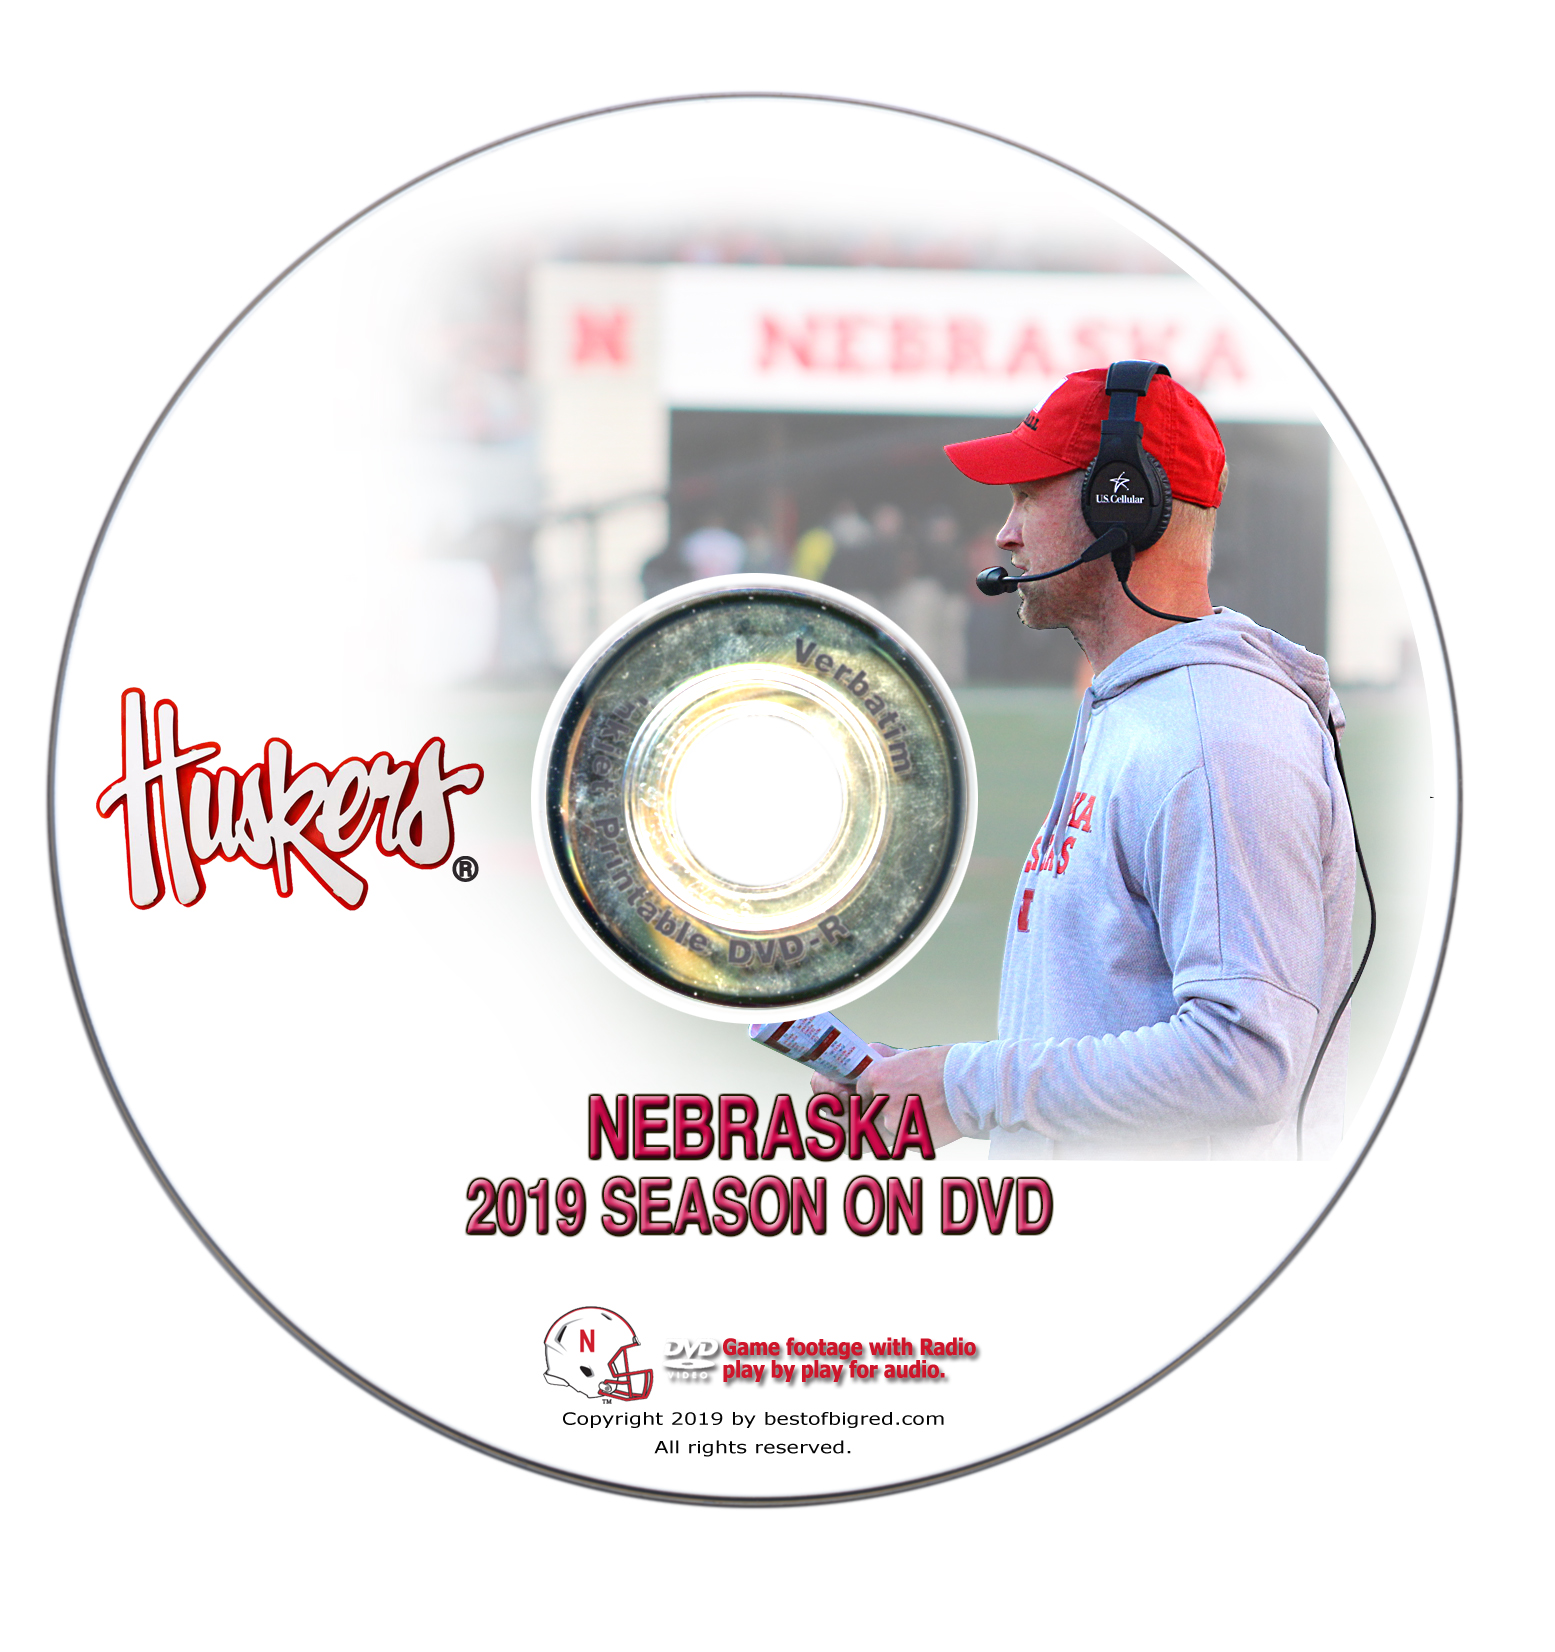 2019 Nebraska Football Season on DVD